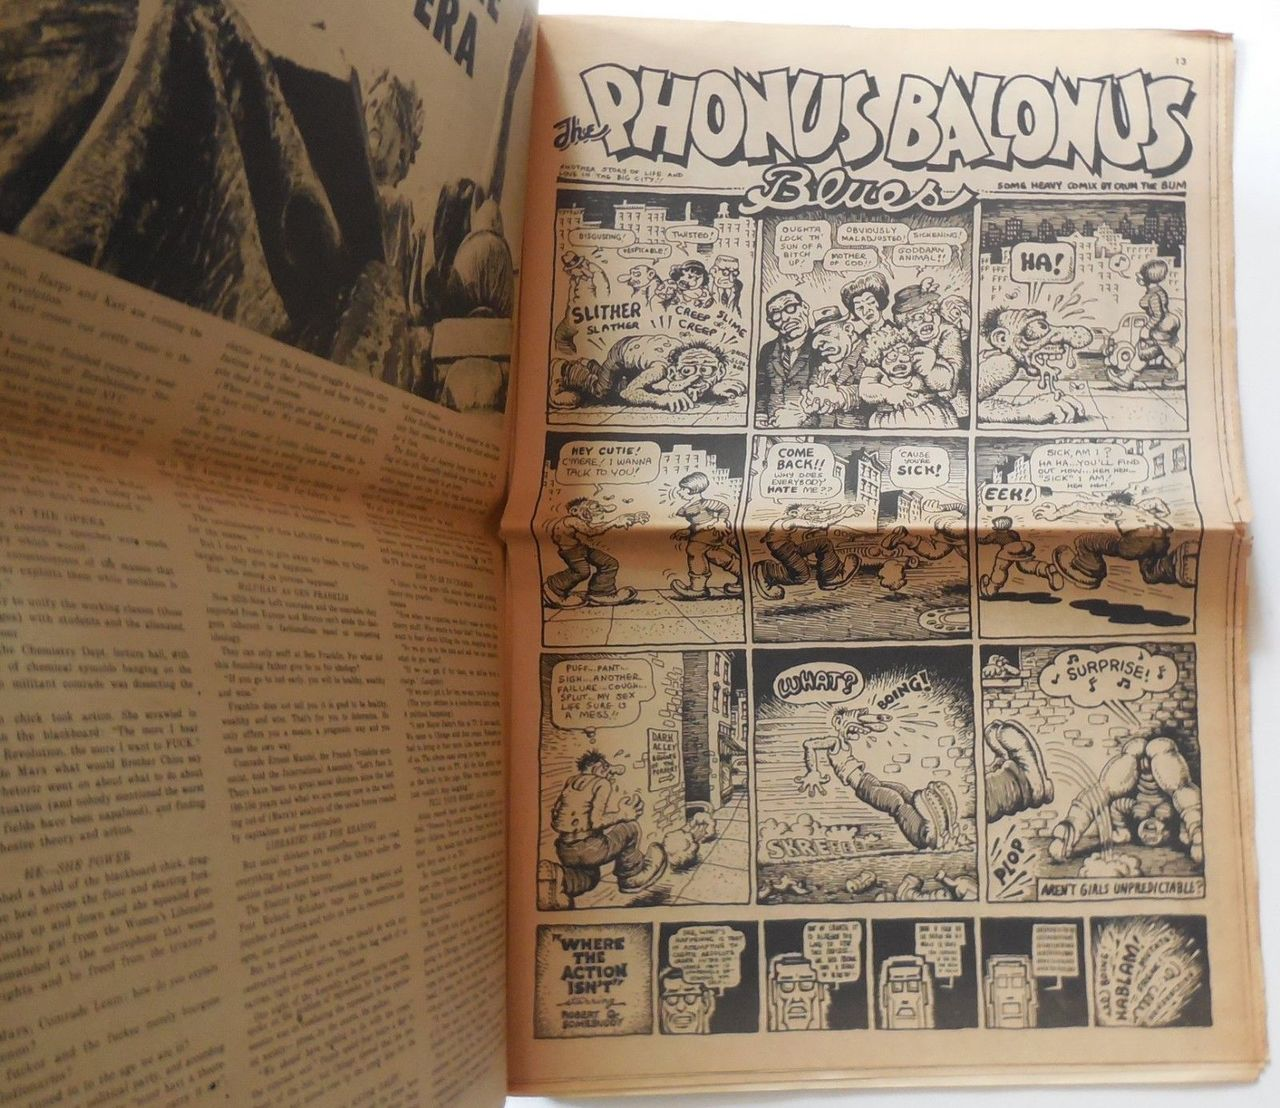 THE EAST VILLAGE OTHER v3 #43, illus by Robert Crumb  - 1968